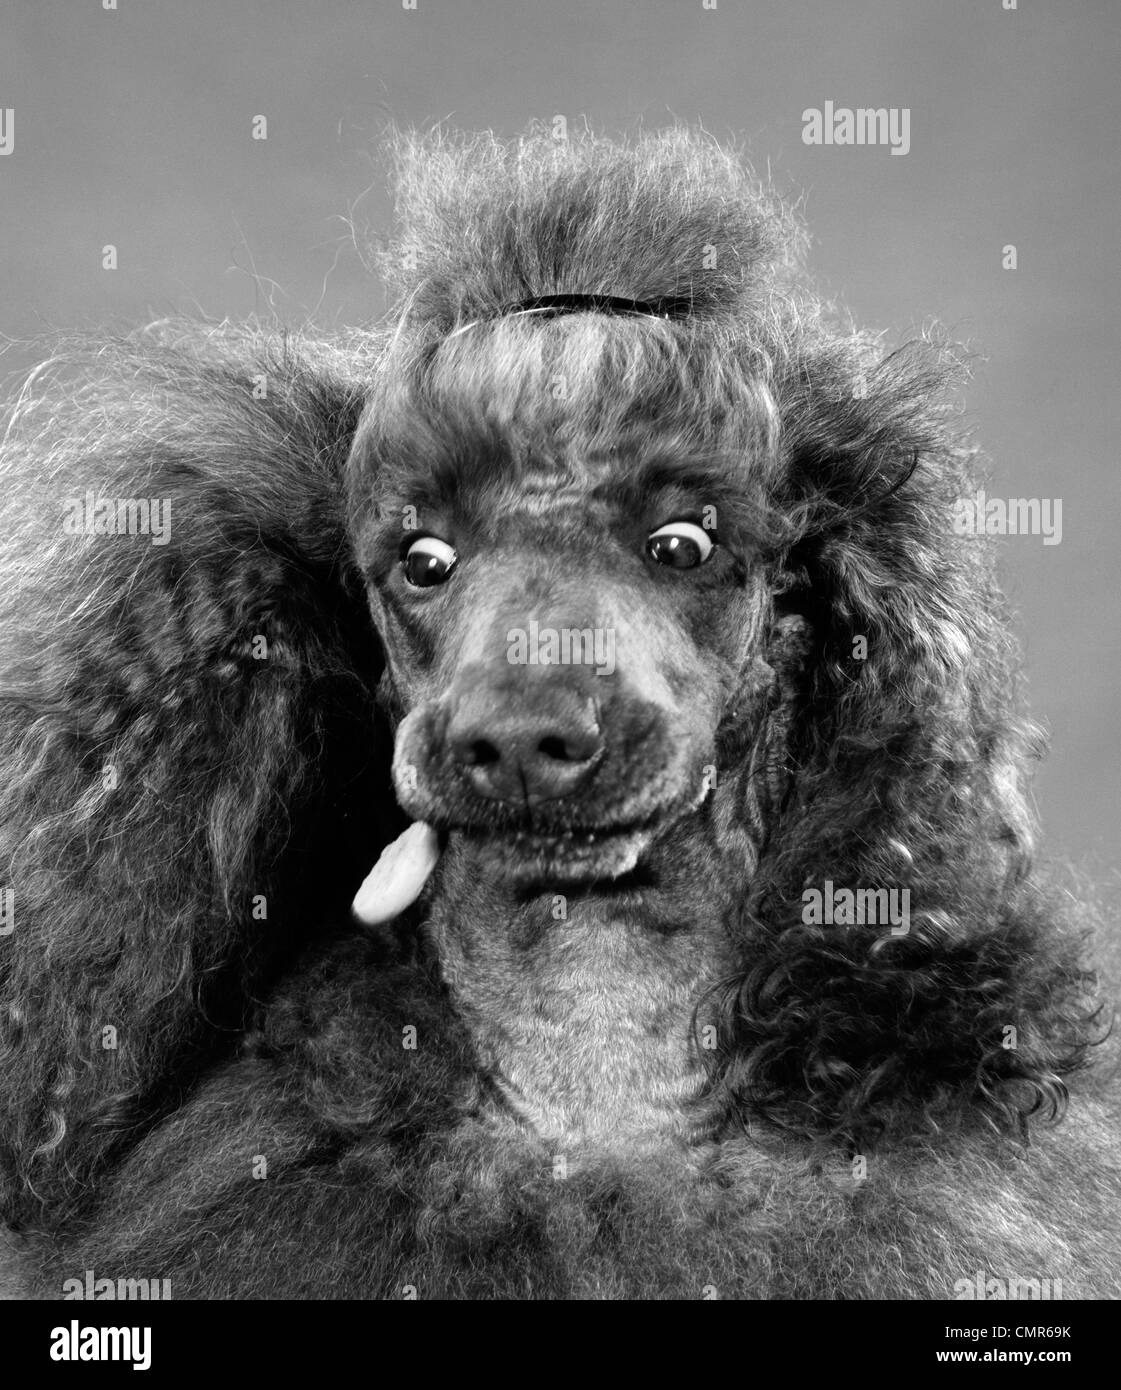 1950s FRENCH POODLE EYES WIDE OPEN ABOUT TO CATCH DOG BISCUIT IN MOUTH INDOOR - Stock Image